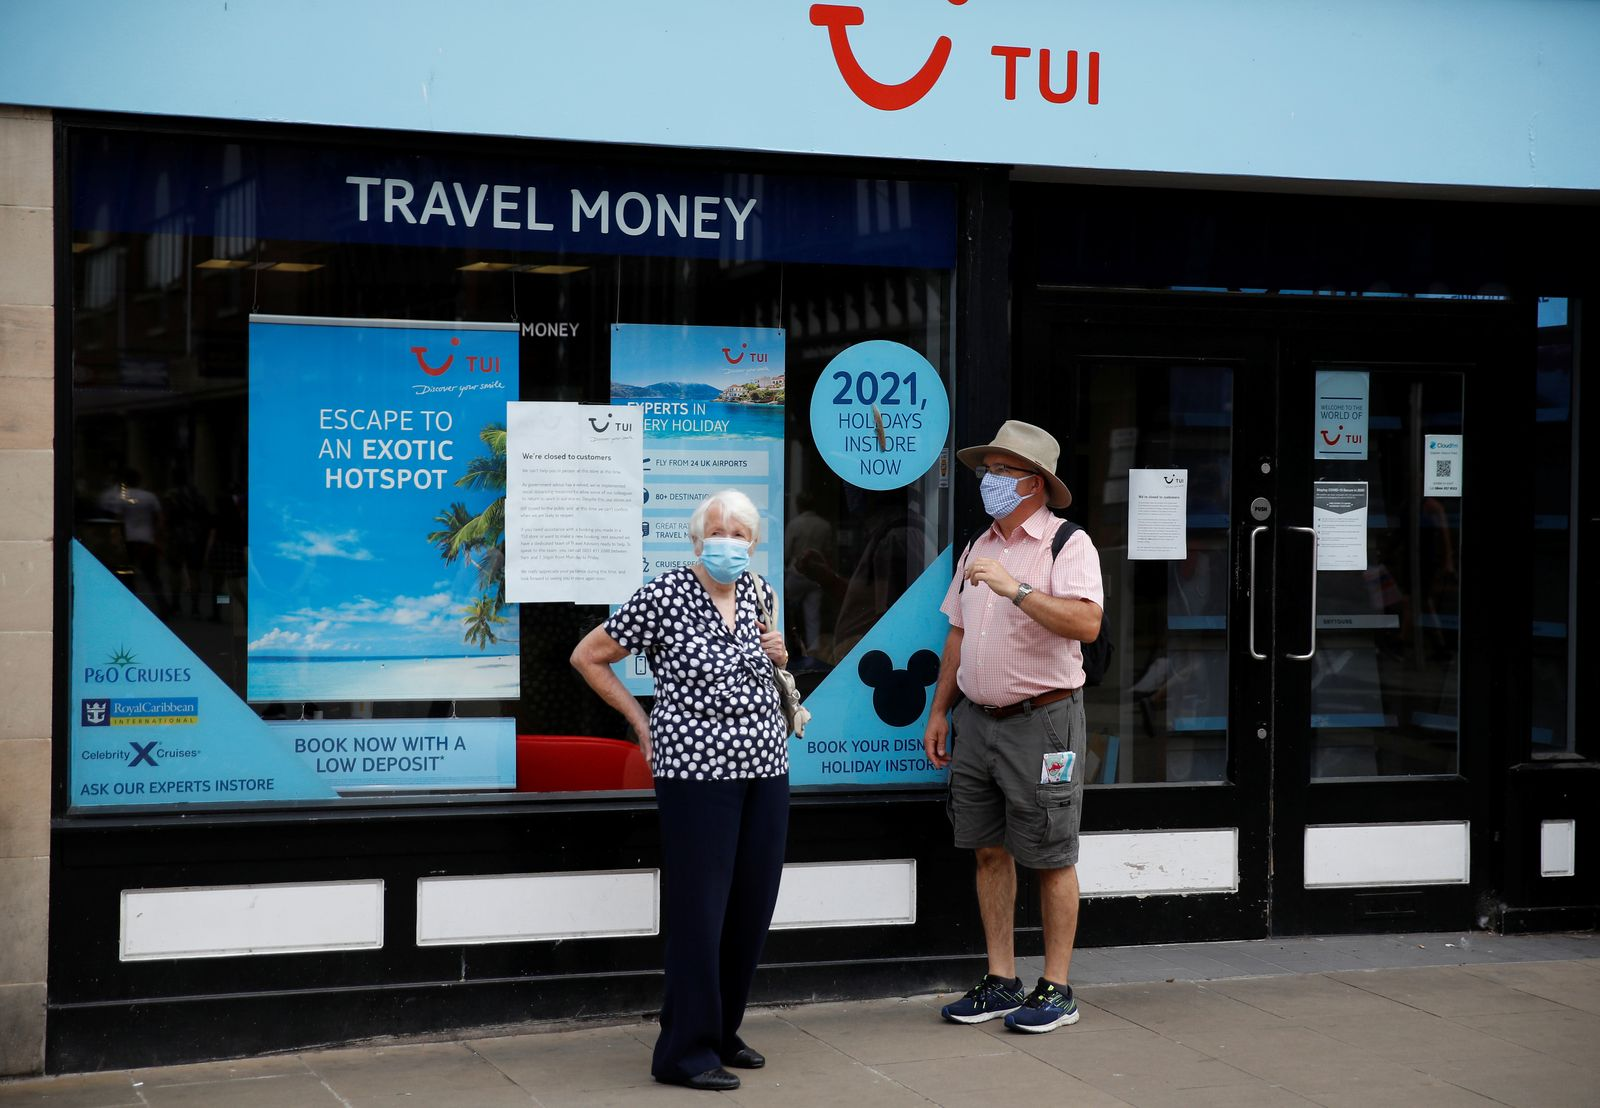 People wear face coverings as they stand outside a Tui travel agents shop following the outbreak of the coronavirus disease (COVID-19) in Chester, Britain